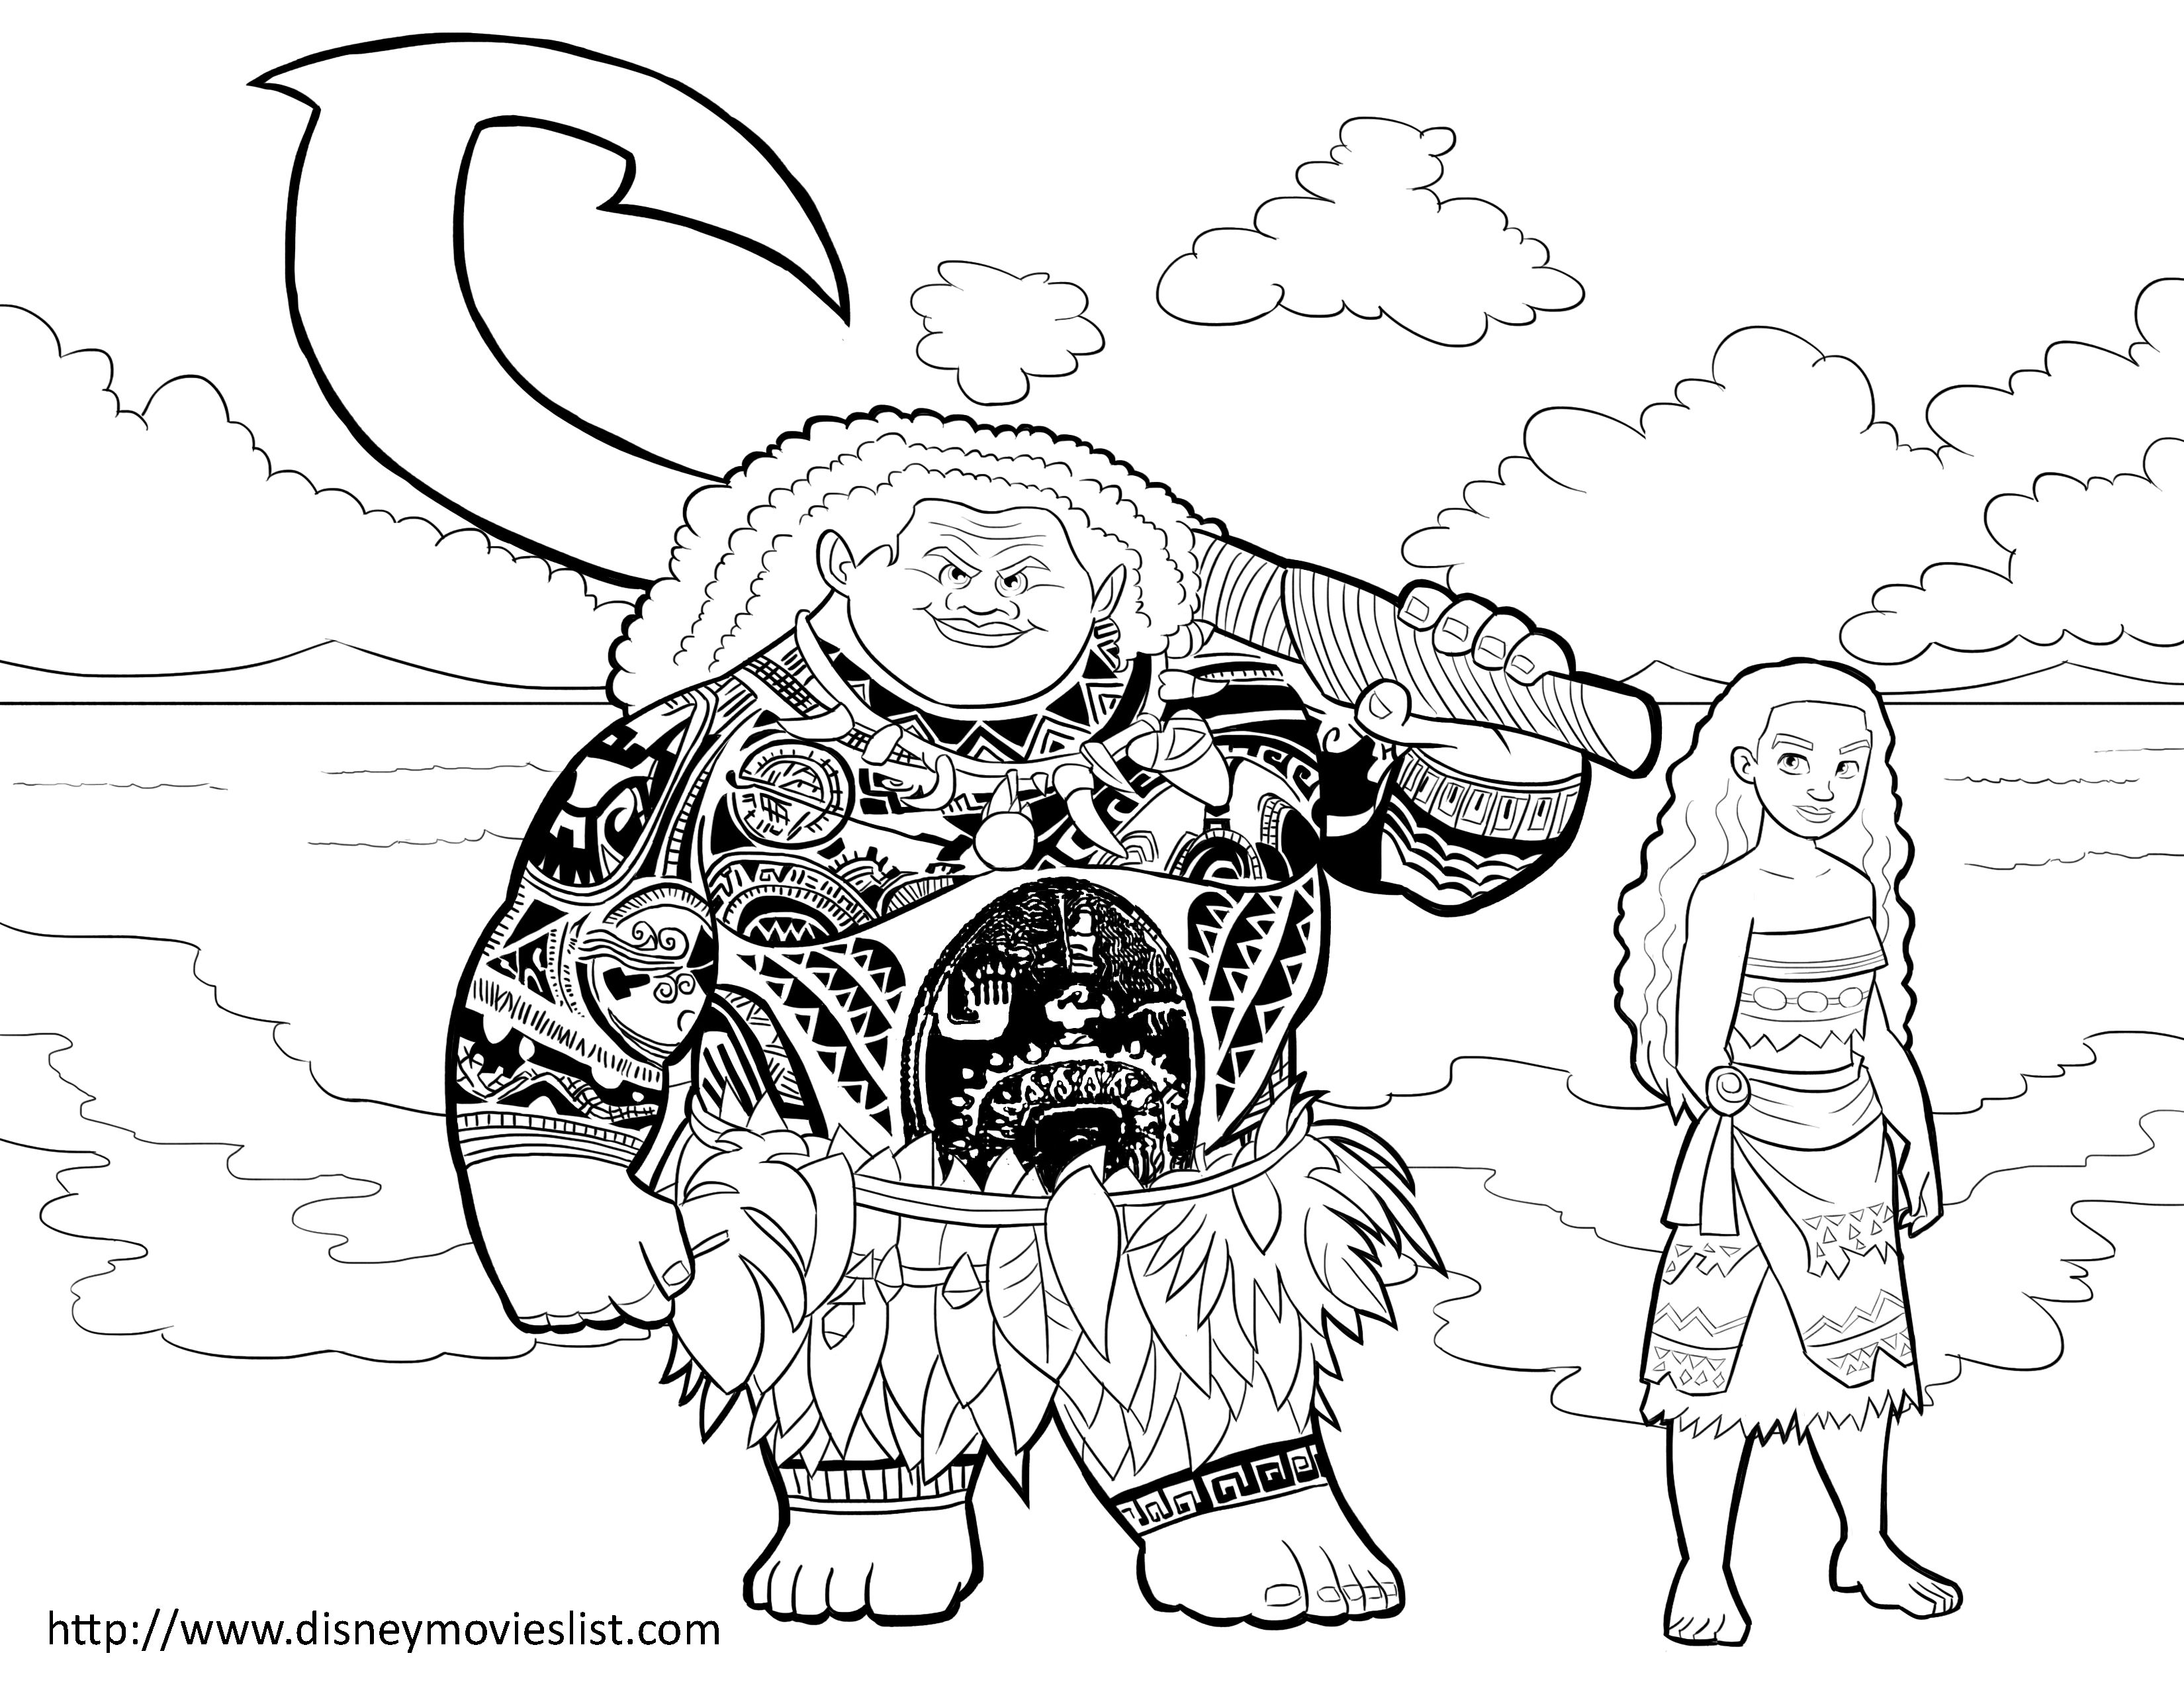 Moana and Maui Coloring Page, Printable Moana / Maui Coloring Sheet ...